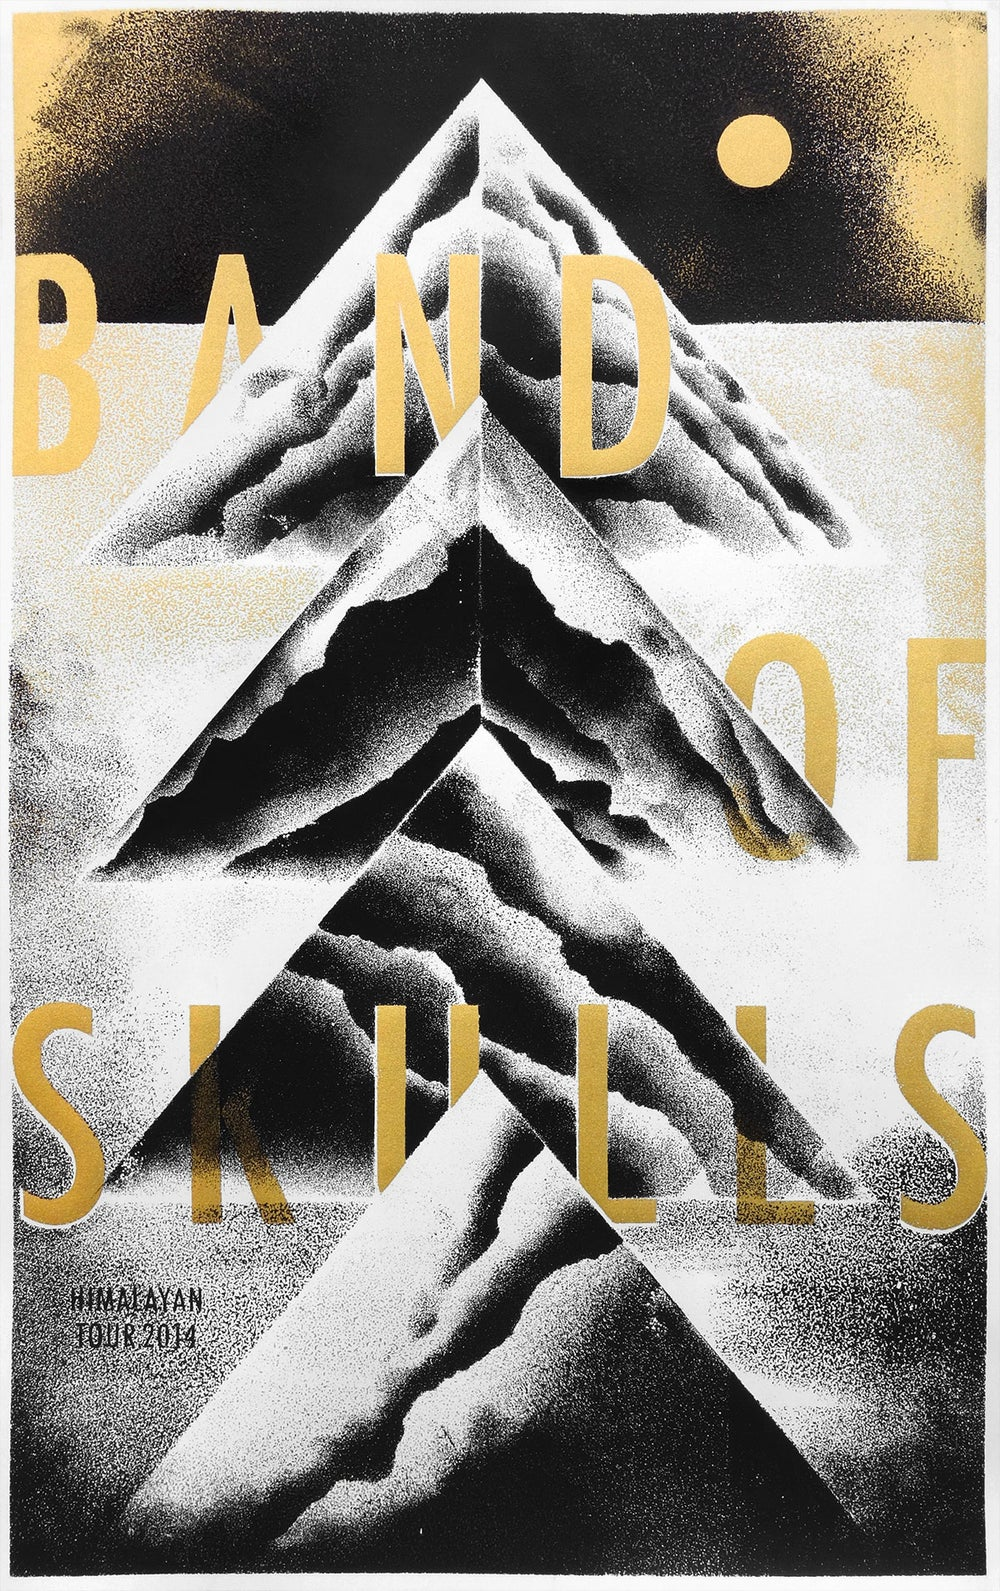 Image of BAND OF SKULLS 01